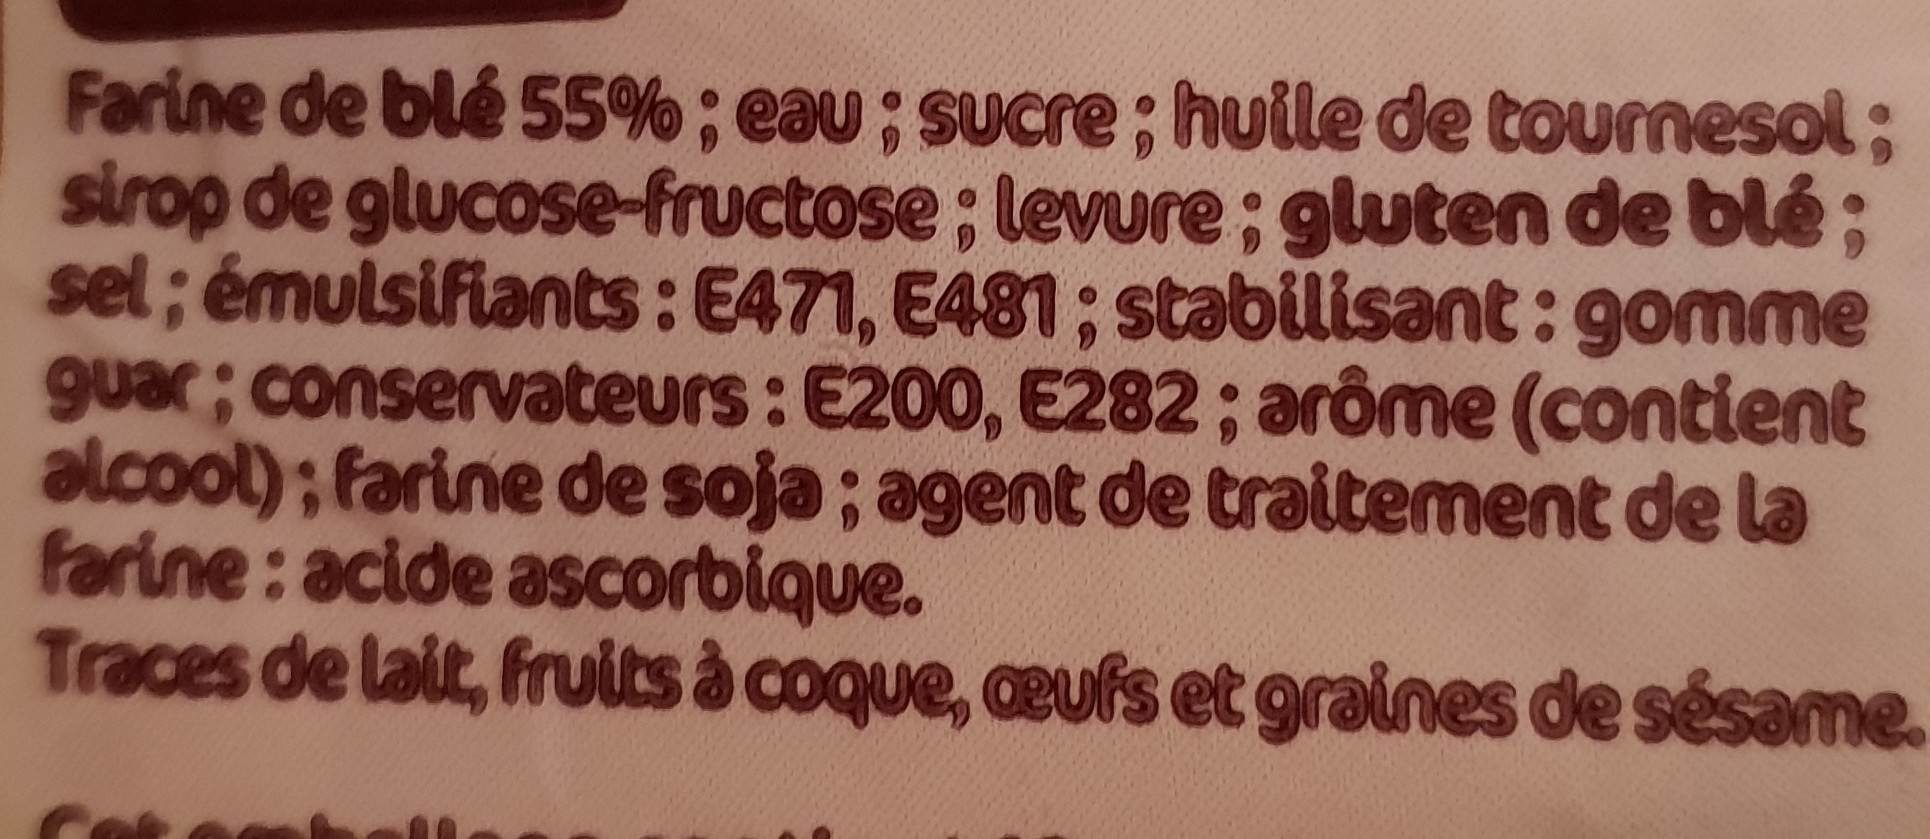 Special mie nature - Ingredientes - fr